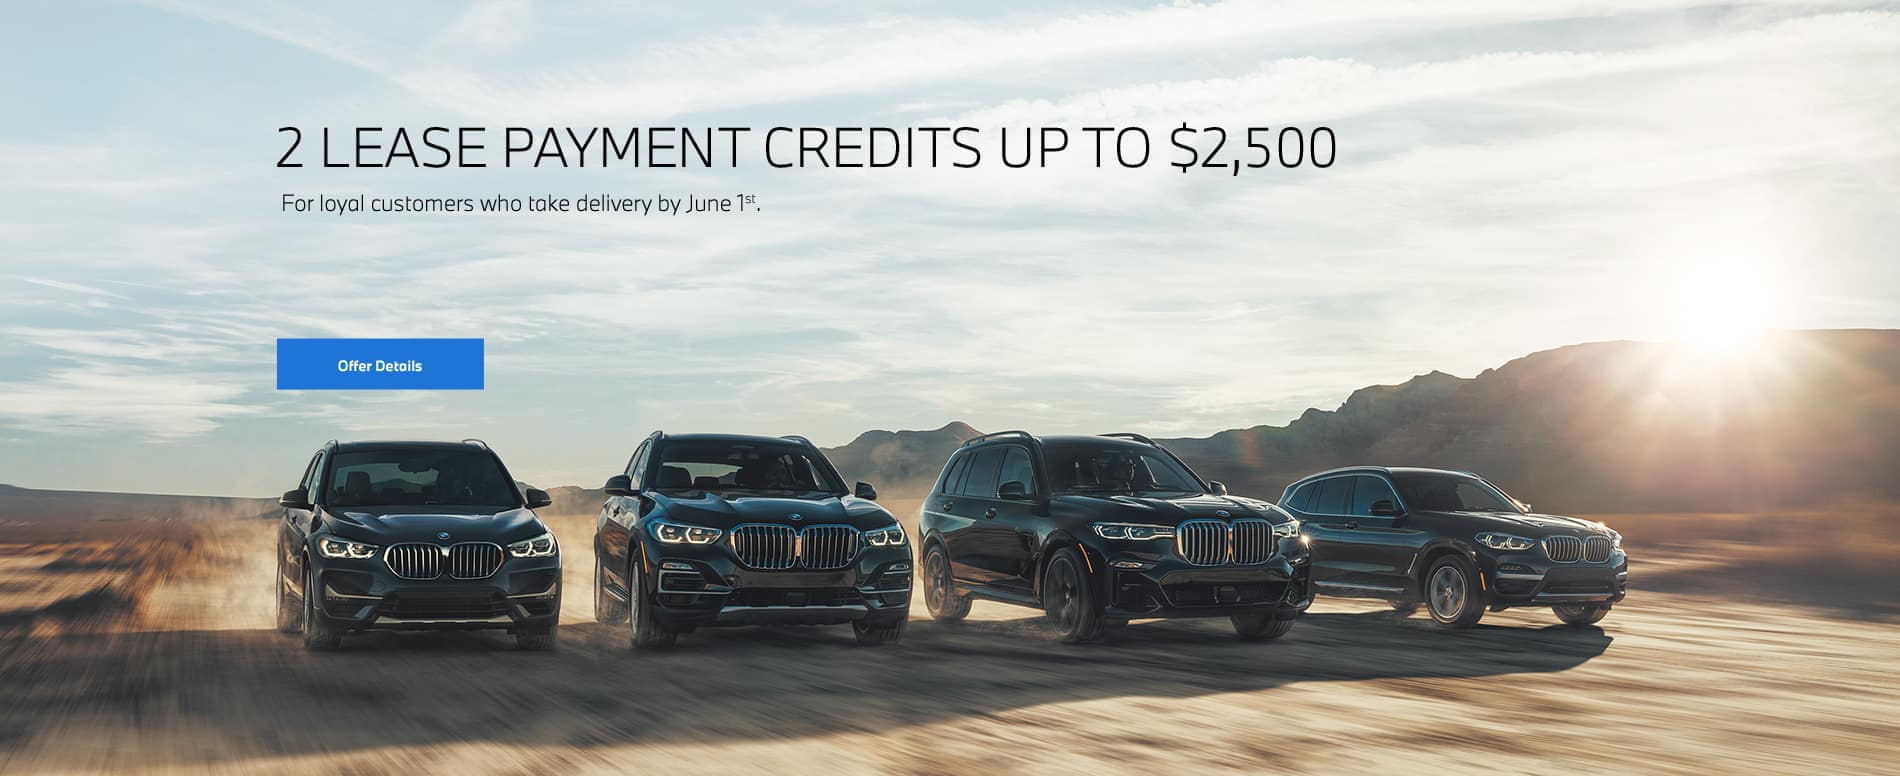 bmw-lease-payment-credits